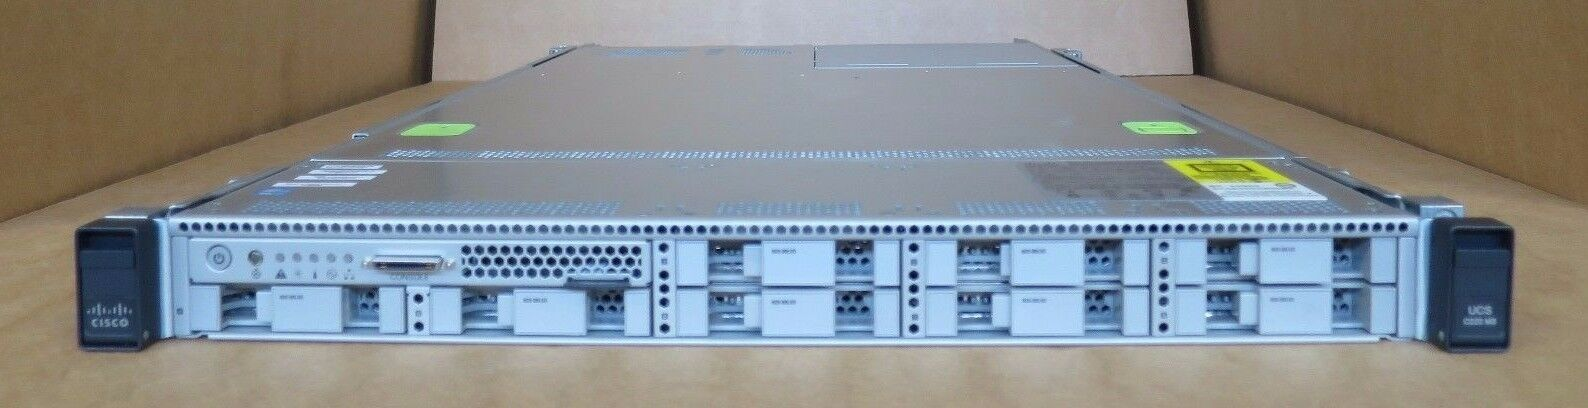 Cisco UCSC-C220-M3S 2 x E5-2650 Eight-Core 2.60GHz 64GB RAM 1U Server